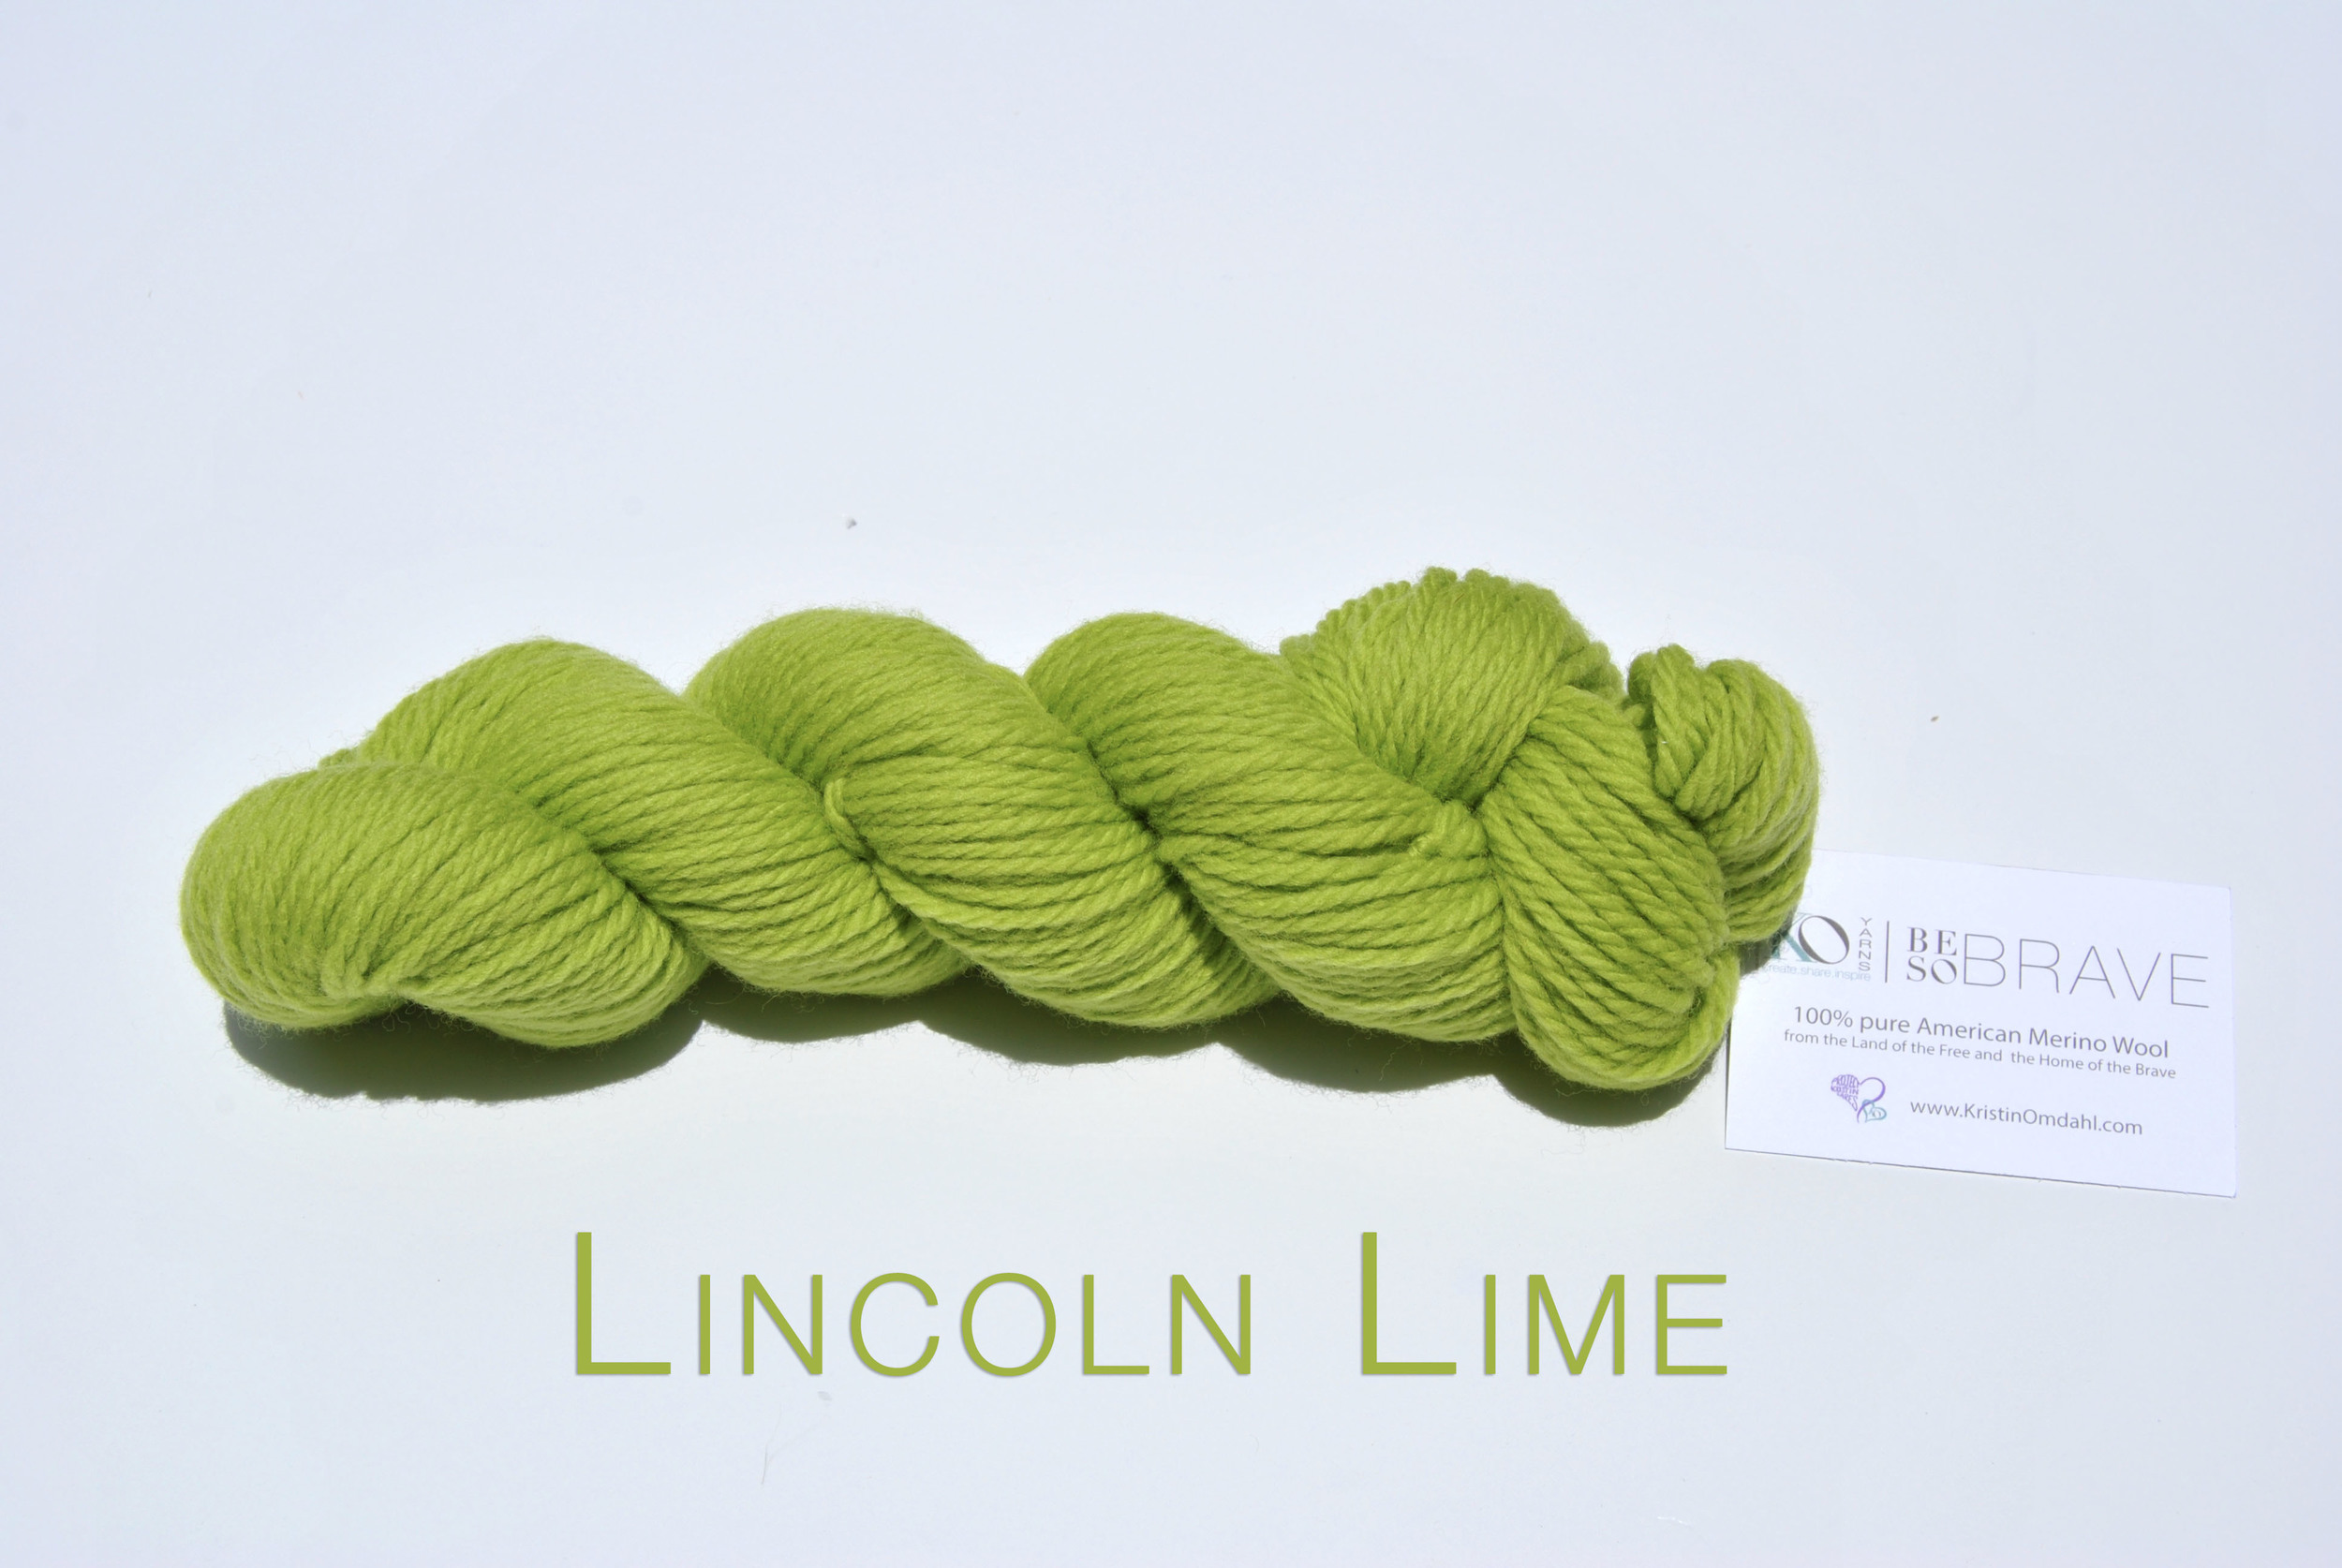 Brave Lincoln LIme single.jpg